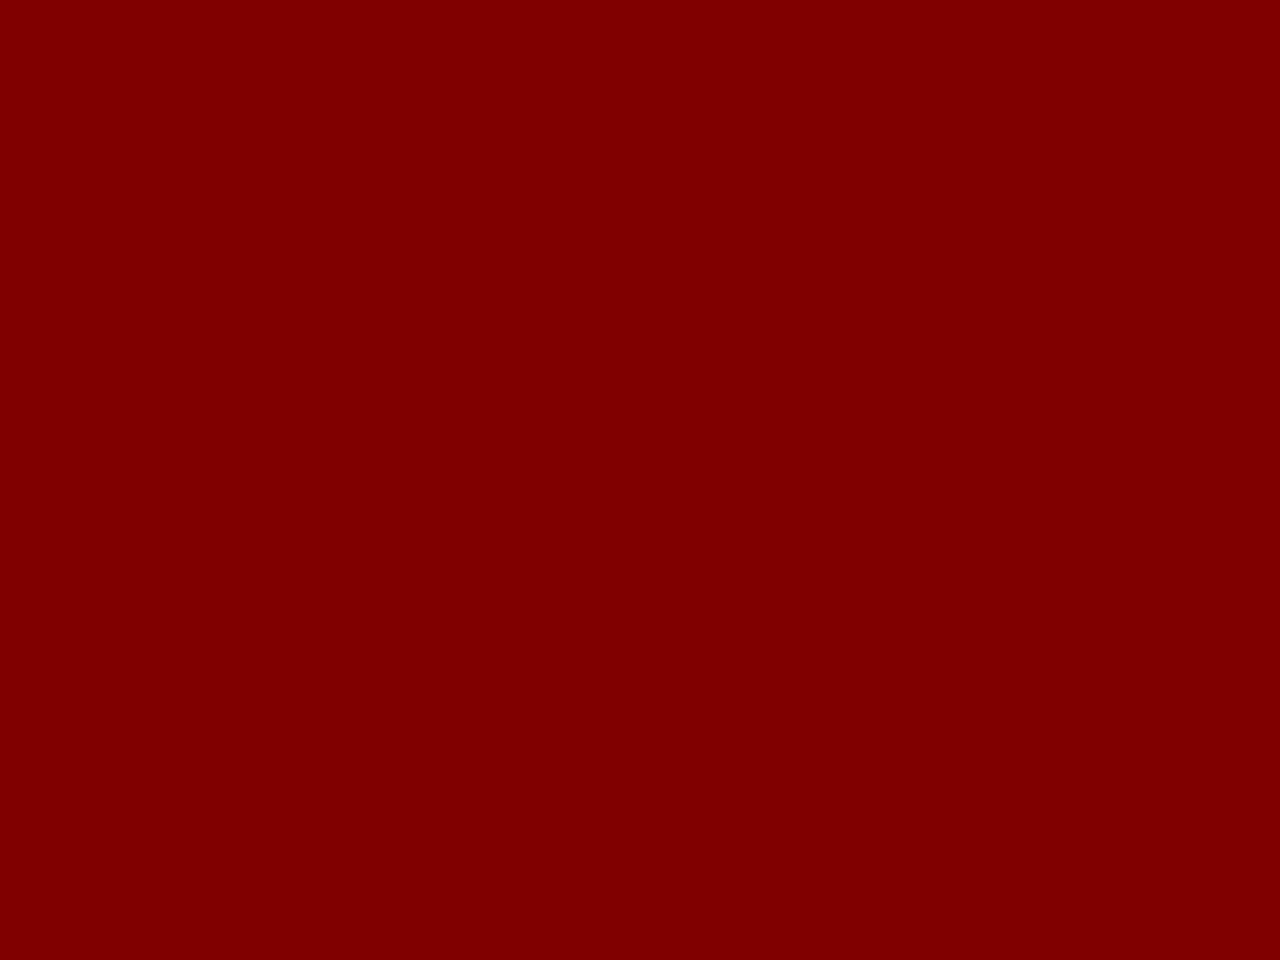 1280x960 Maroon Web Solid Color Background